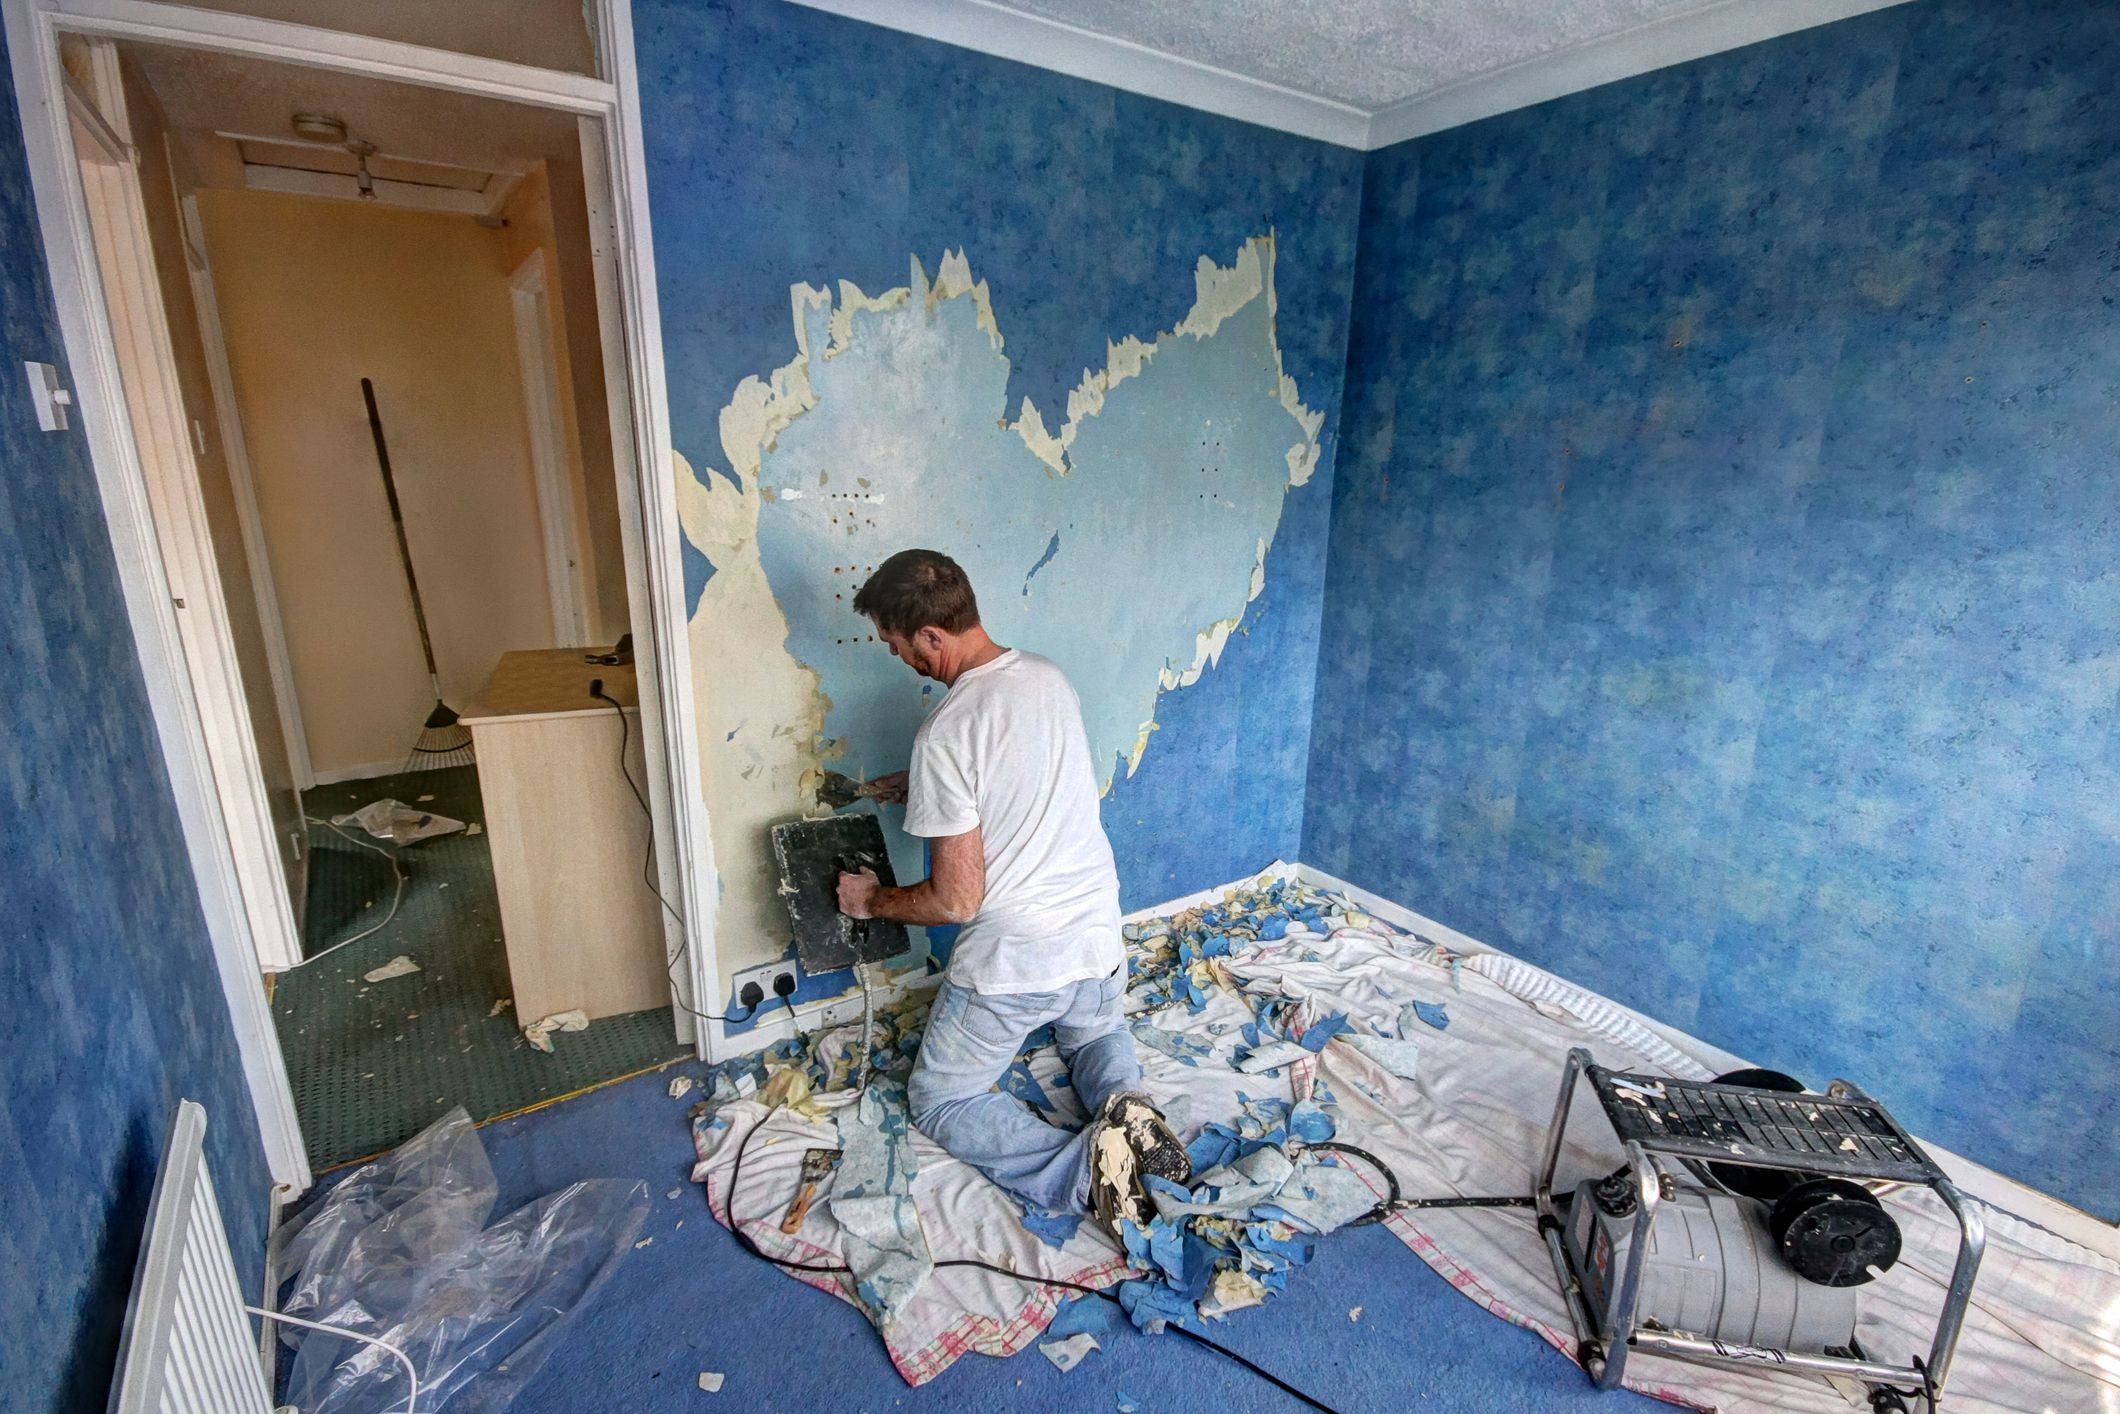 cost to refinish hardwood floors philadelphia of removing non load bearing walls issues to consider regarding removing wallpaper prior to taking down wall 134308985 576c330b3df78cb62c3e5b69